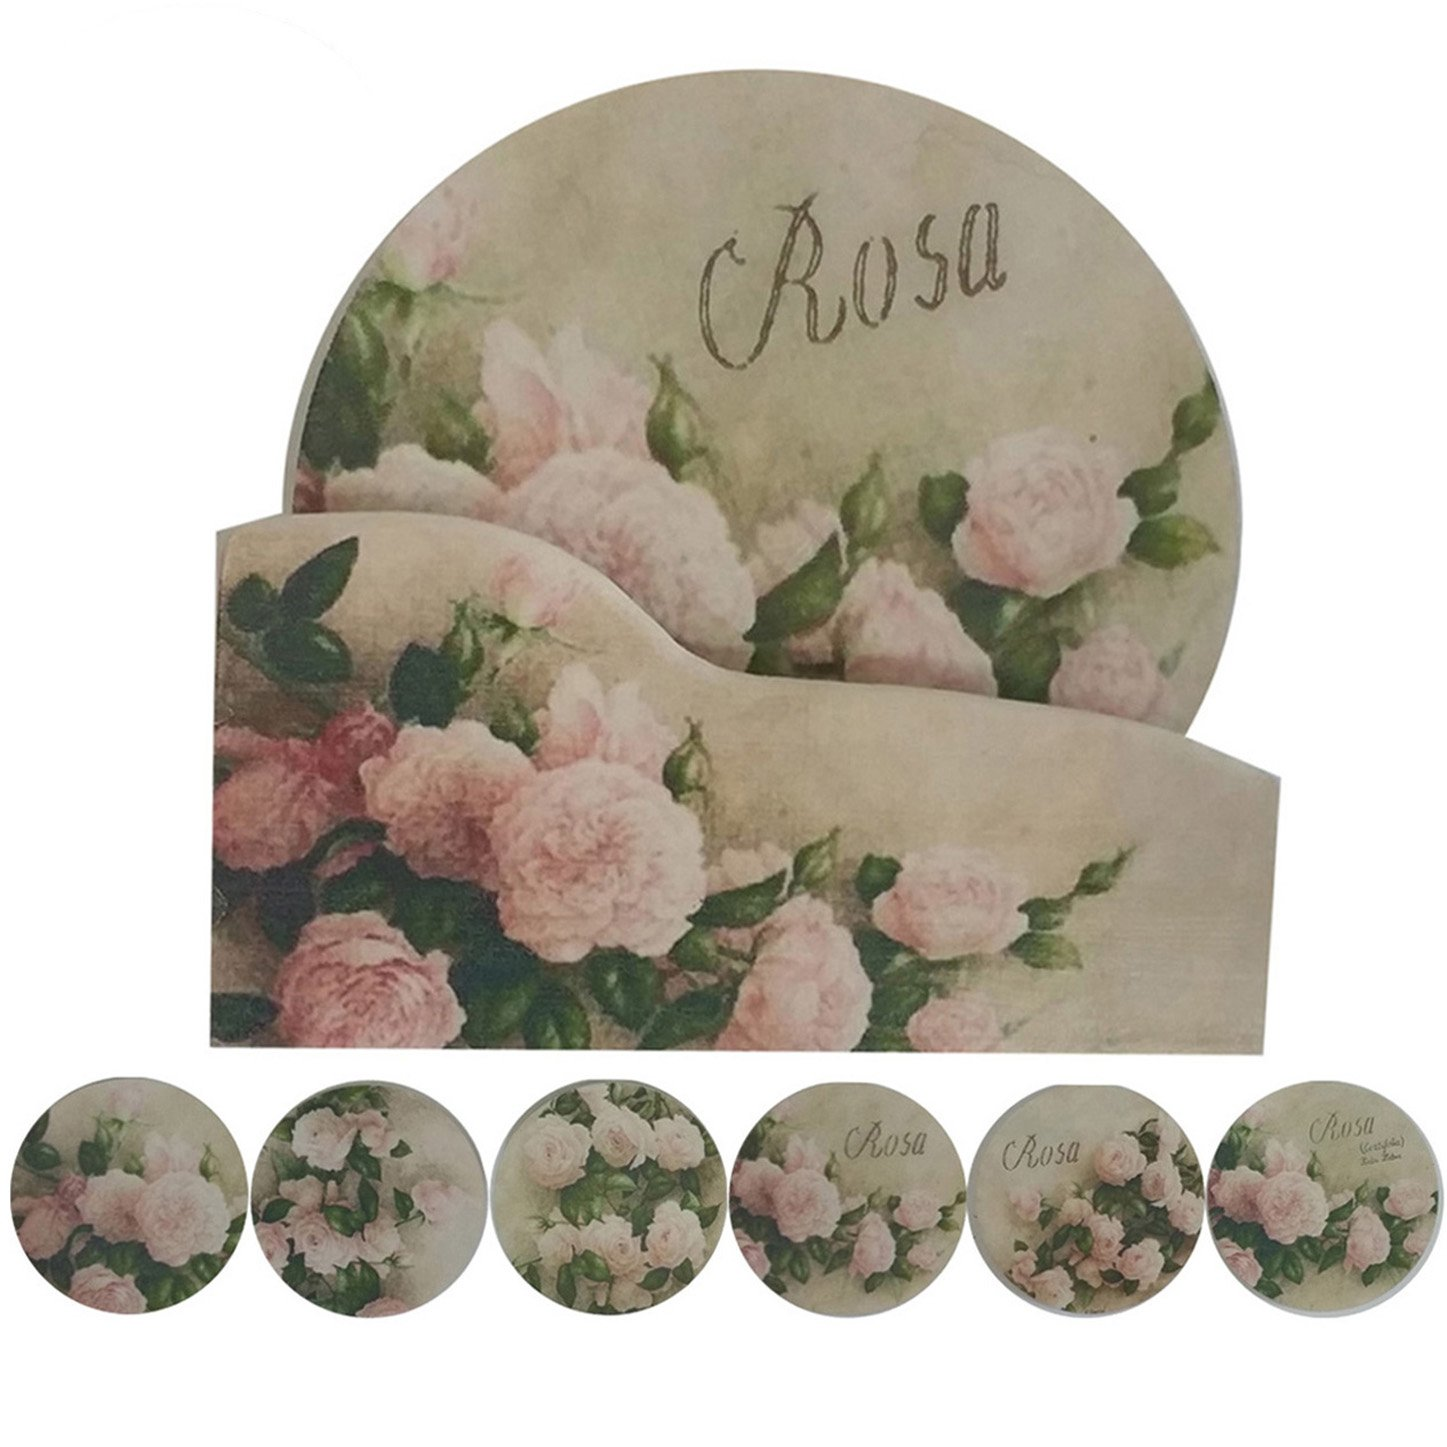 """Coralpearl Cork Absorbent Coasters with Holder Decorative Round Heat Resistant Pad Mats Spoon Rest Trivet Set Table Runner Kit Large for 6 Drinks Hot Pans,Pots,Stovetop,Countertops (4.3"""" NO.3-Roses)"""